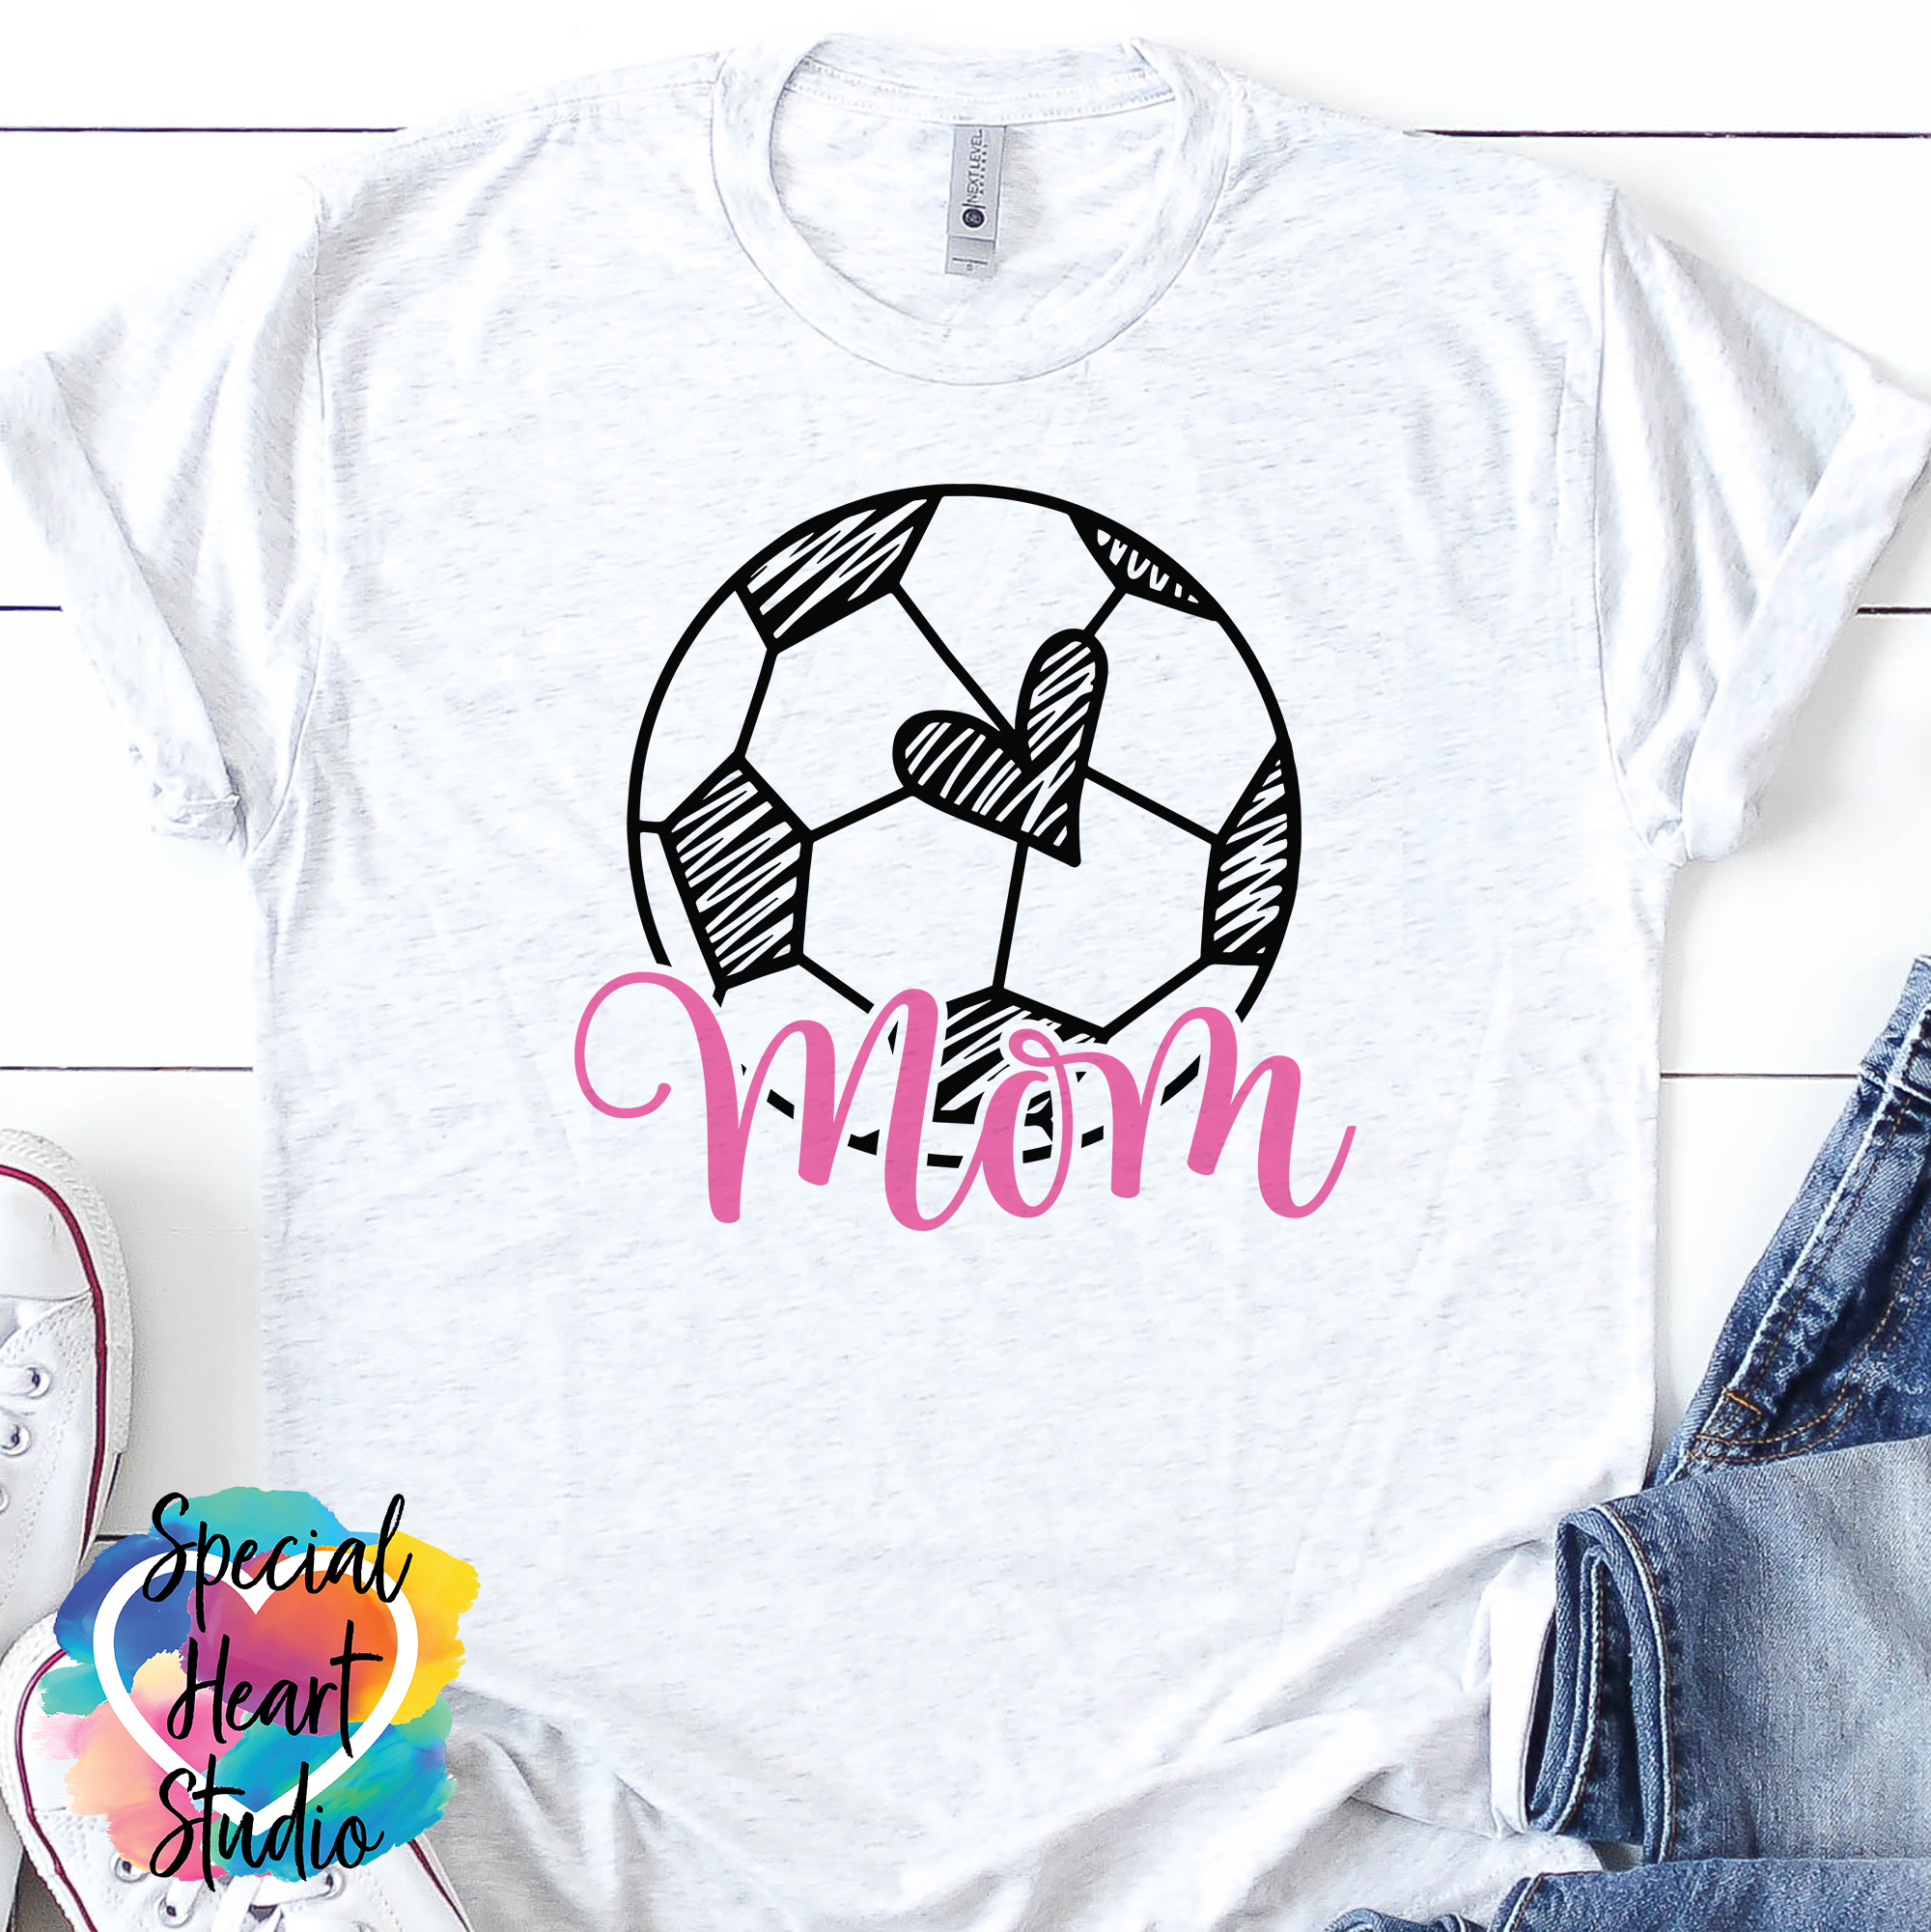 Soccer Mom Svg Special Heart Studio Cut Files Crafts And Fun